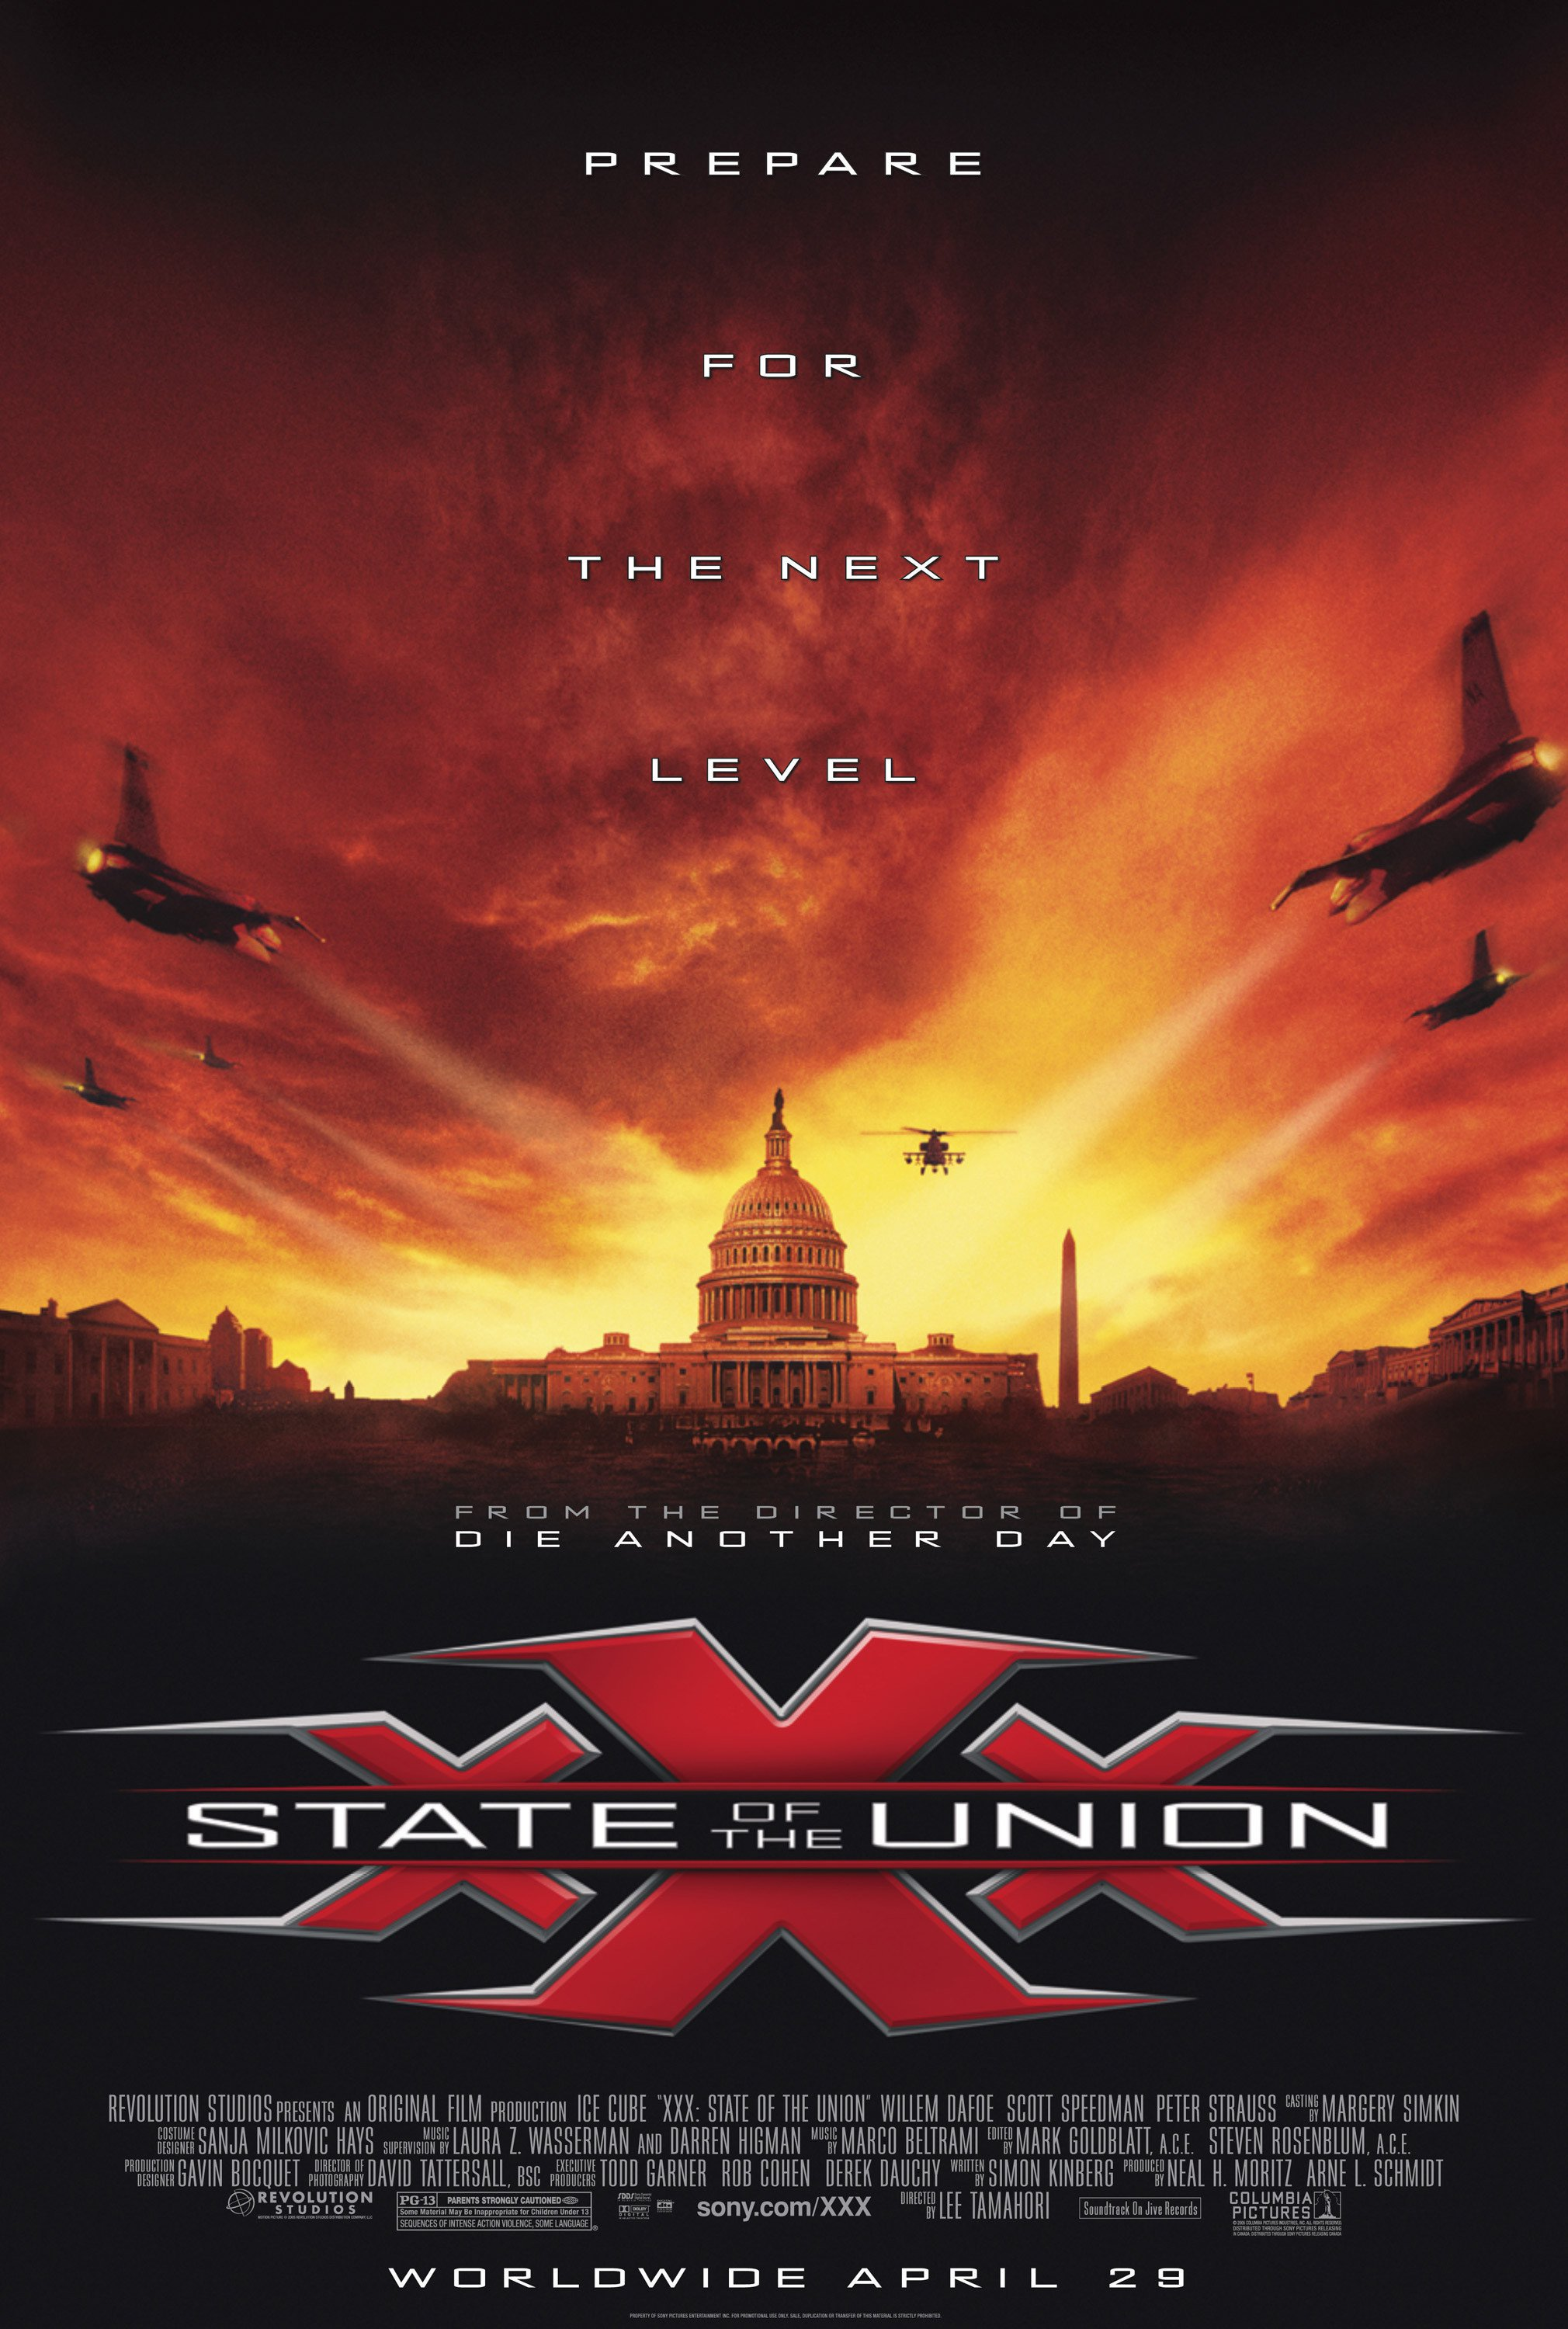 xXx: State of the Union (2005) - IMDb